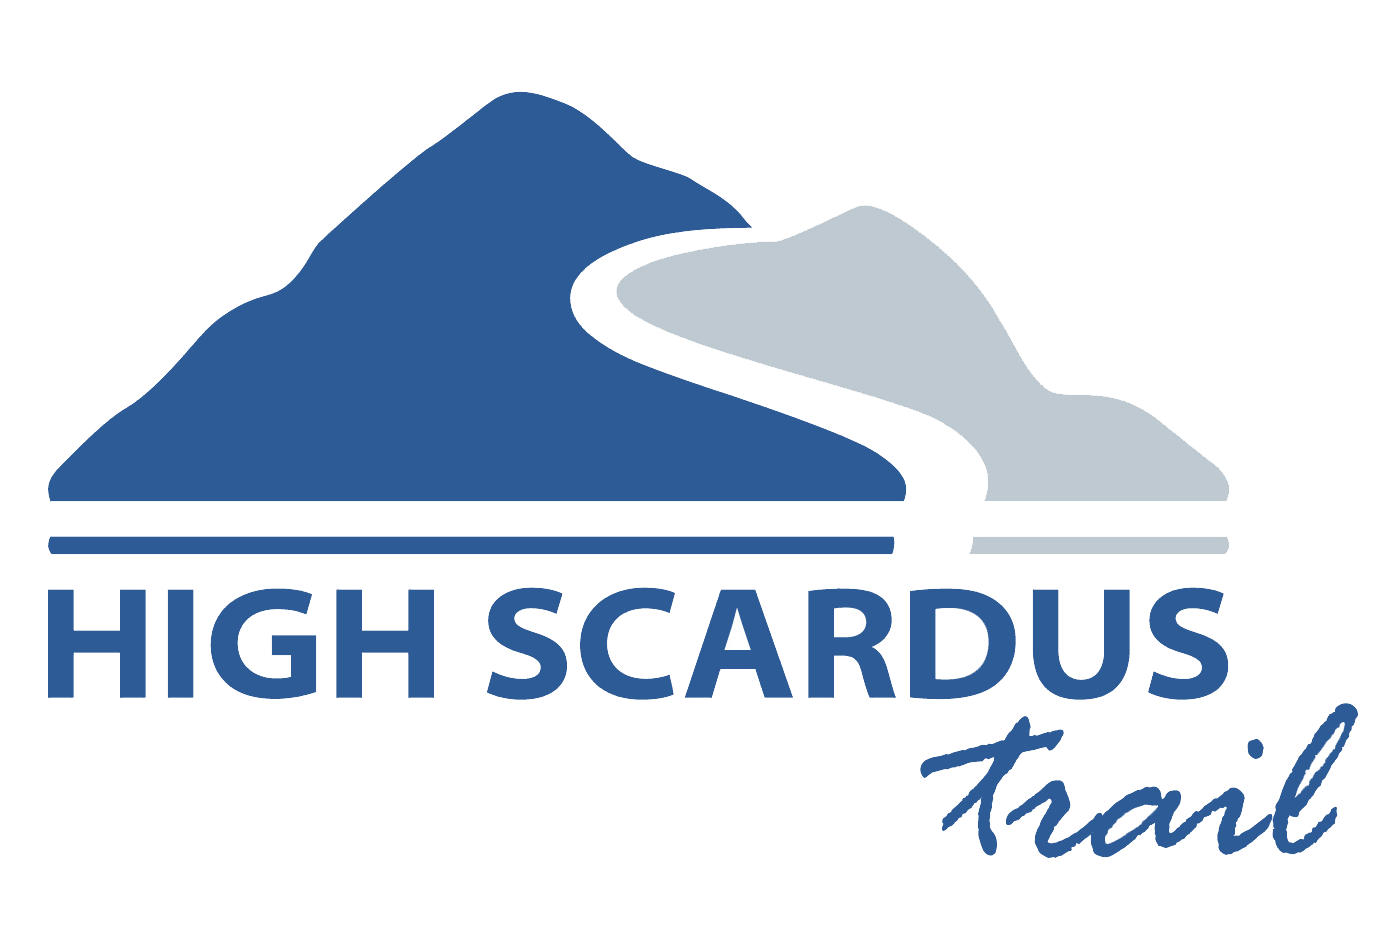 High Scardus Trail